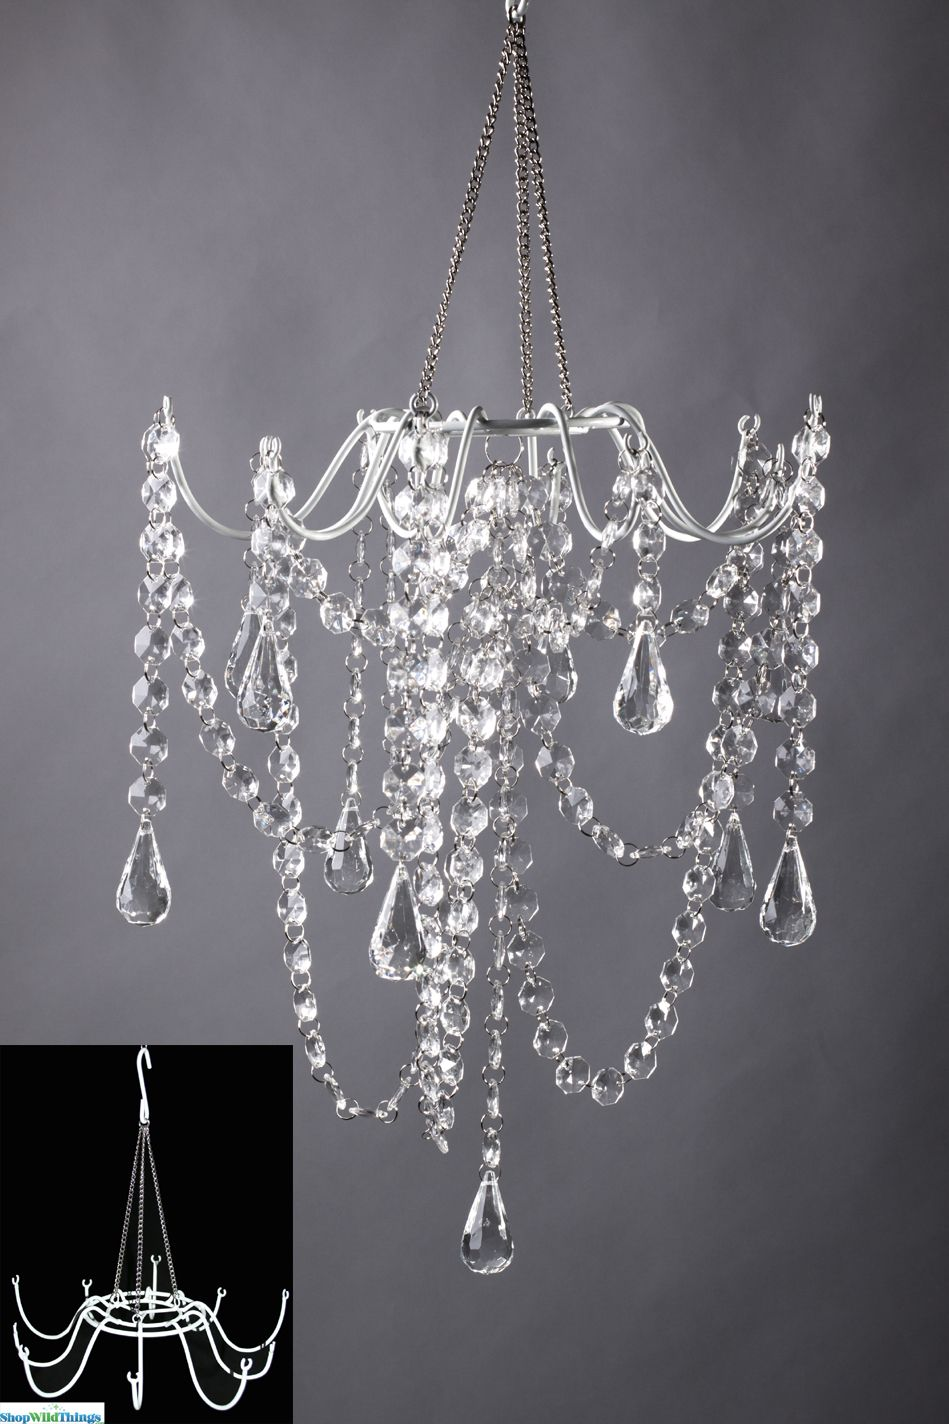 Create your very own chandelier decoration using our white metal